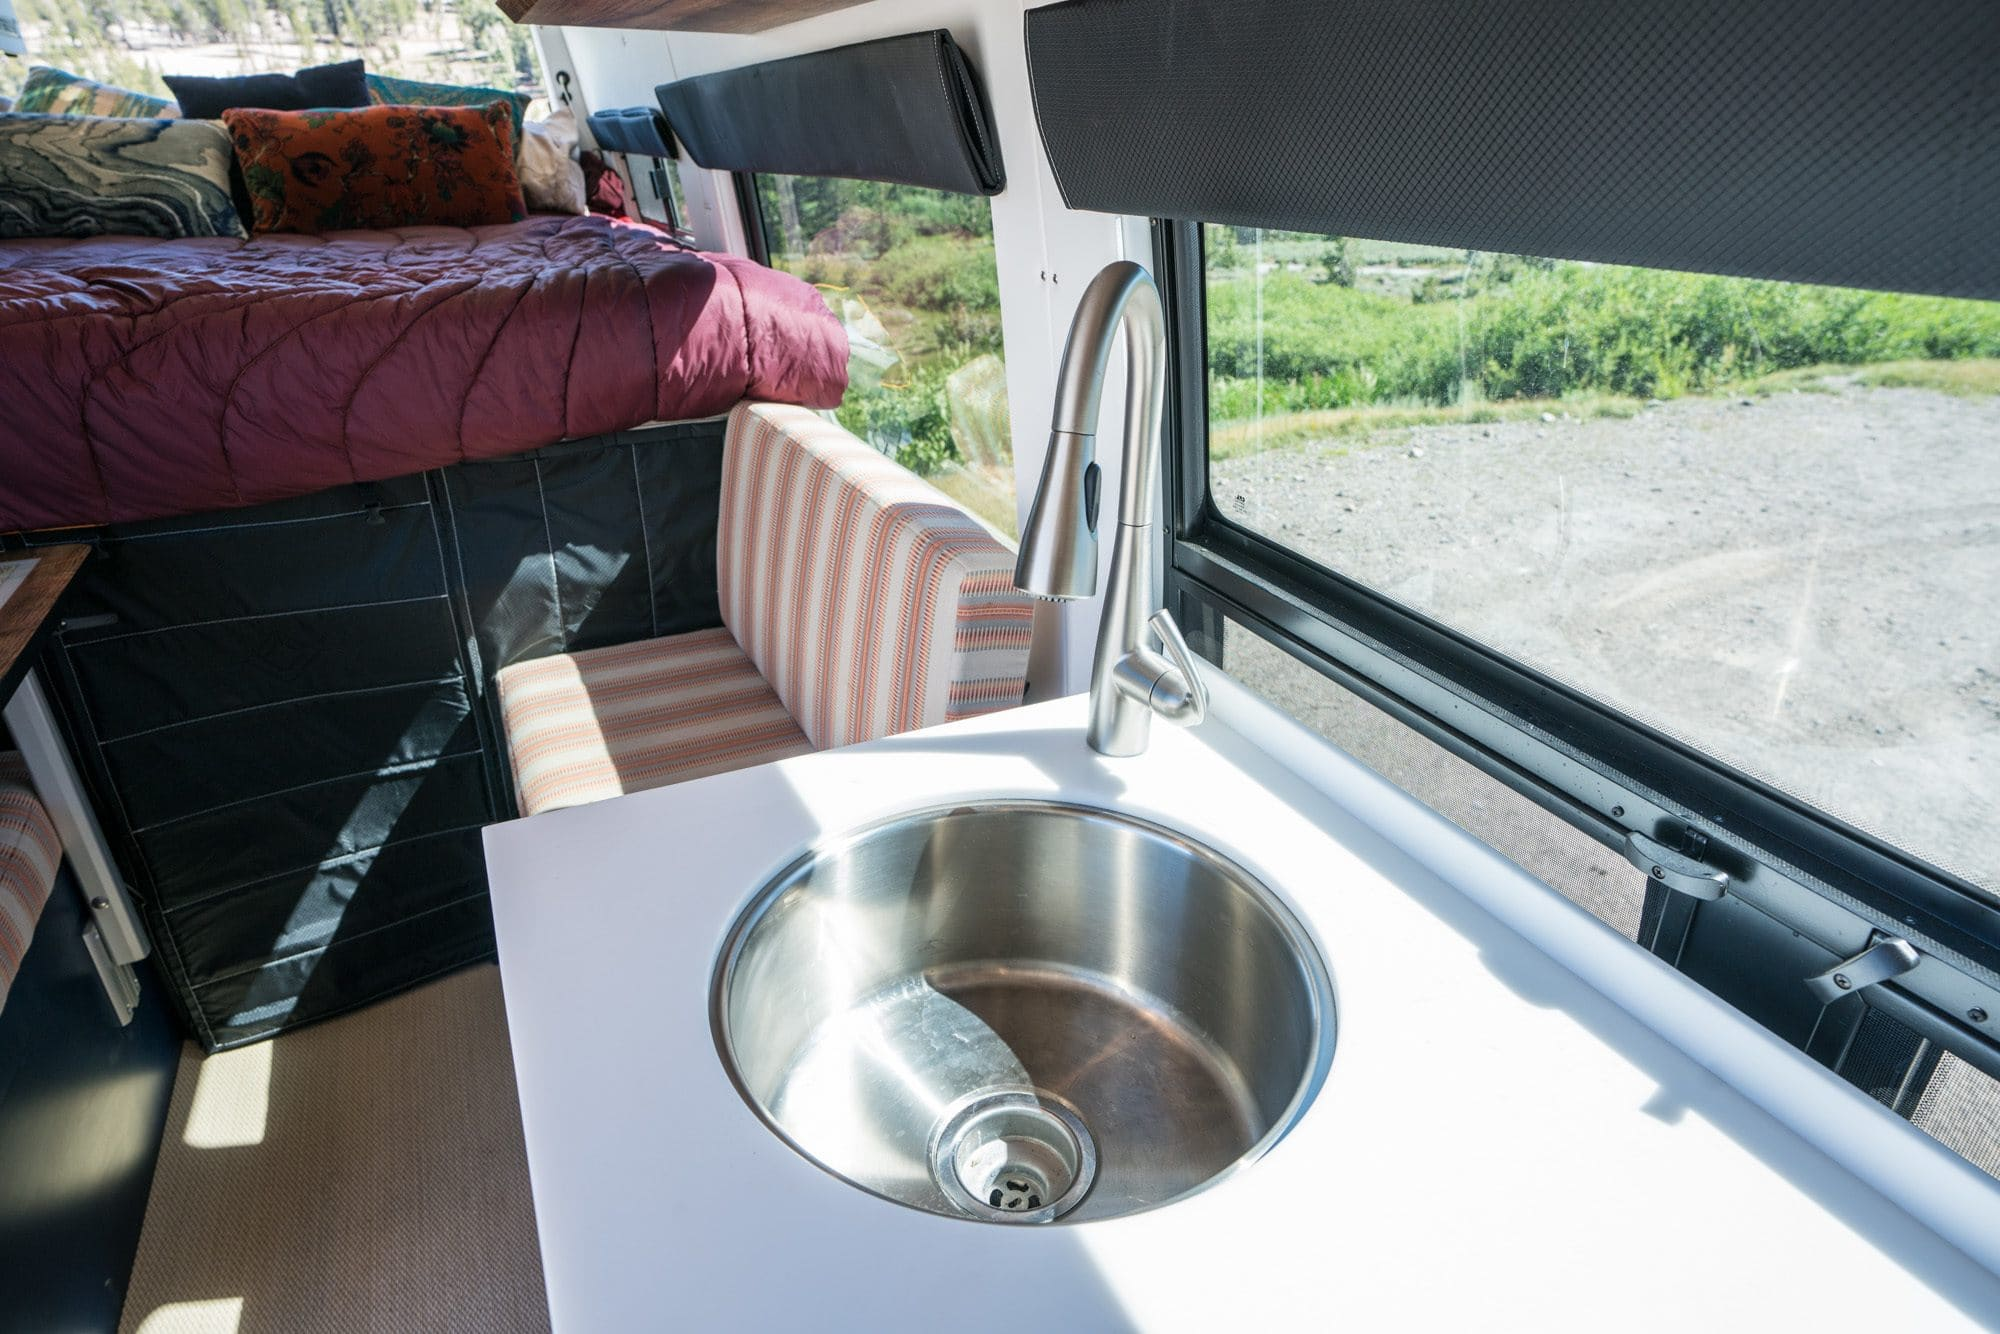 """Sprinter Van sink // Tour Bearfoot Theory's Outside Van Sprinter Van conversion. This 4x4 170"""" Sprinter camper has everything you need for off-the-grid vanlife adventures."""